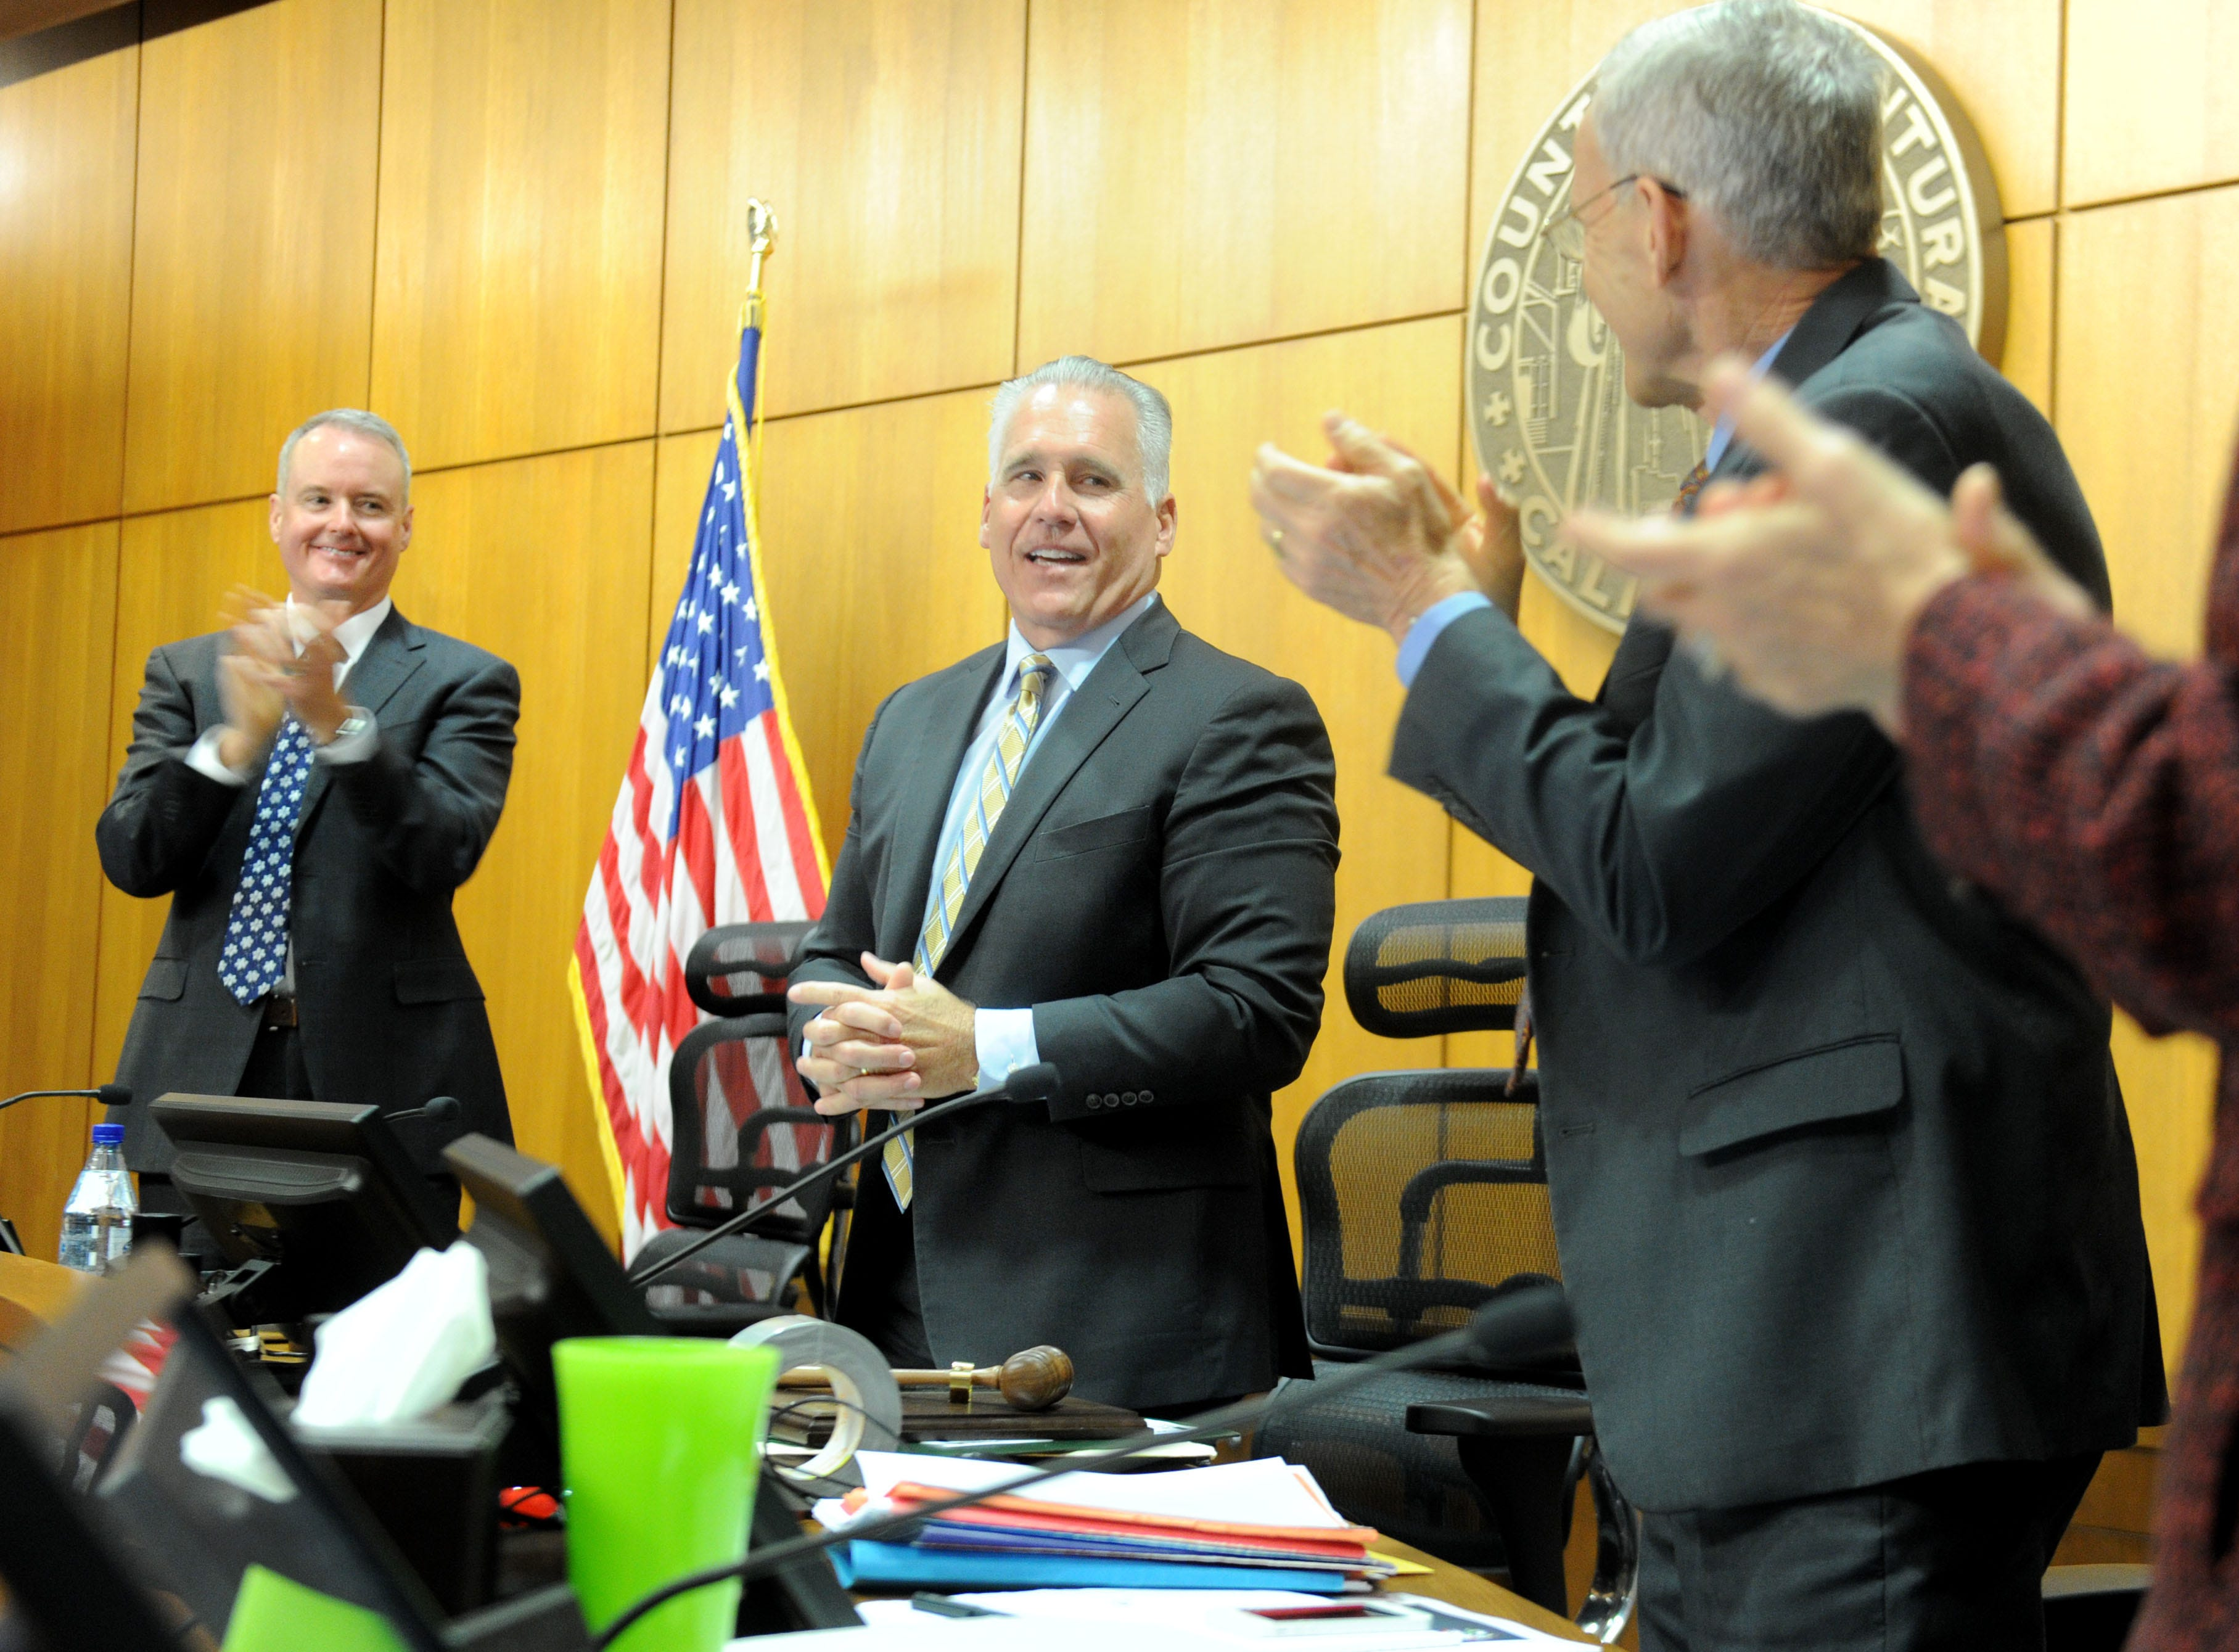 County Executive Officer Mike Powers and Supervisor Steve Bennett congratulate Supervisor Peter Foy (center) as he receives a standing ovation during a recognition ceremony Tuesday in Ventura. The occasion marked Foy's last meeting as a member of the Ventura County Board of Supervisors.